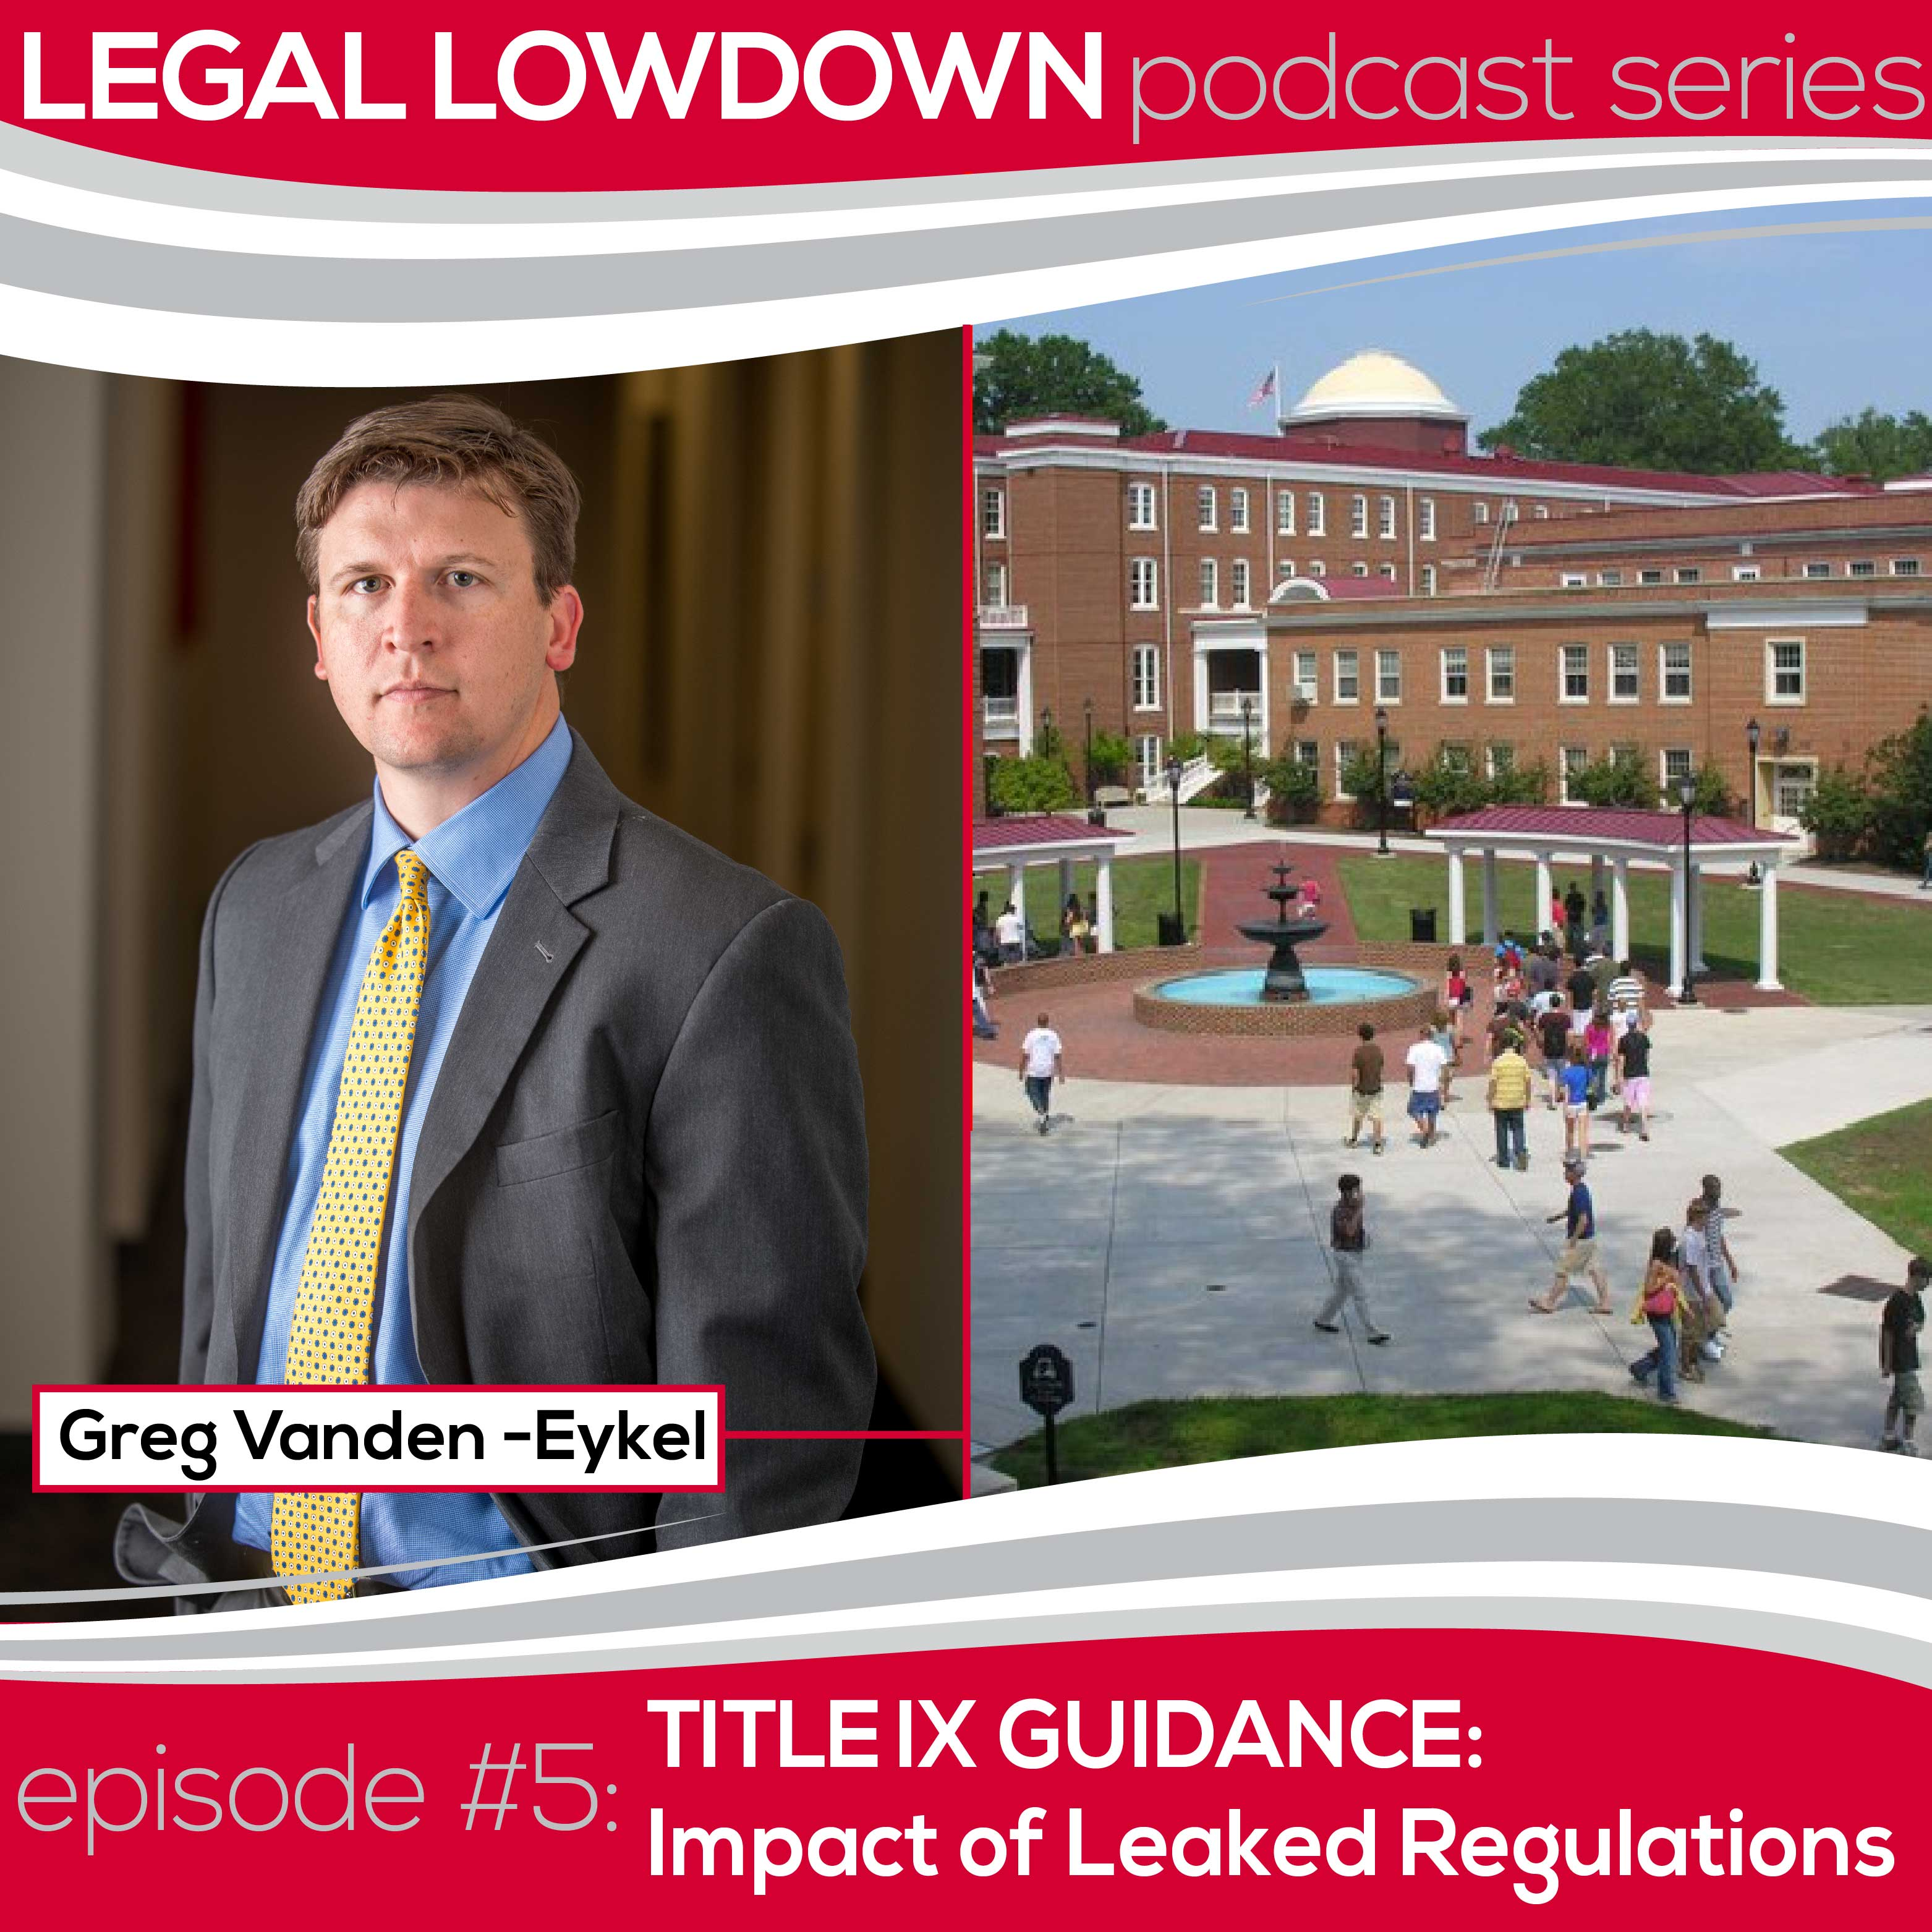 Legal Lowdown Podcast – Episode #5 – Title IX Guidance: Impact of Leaked Regulations